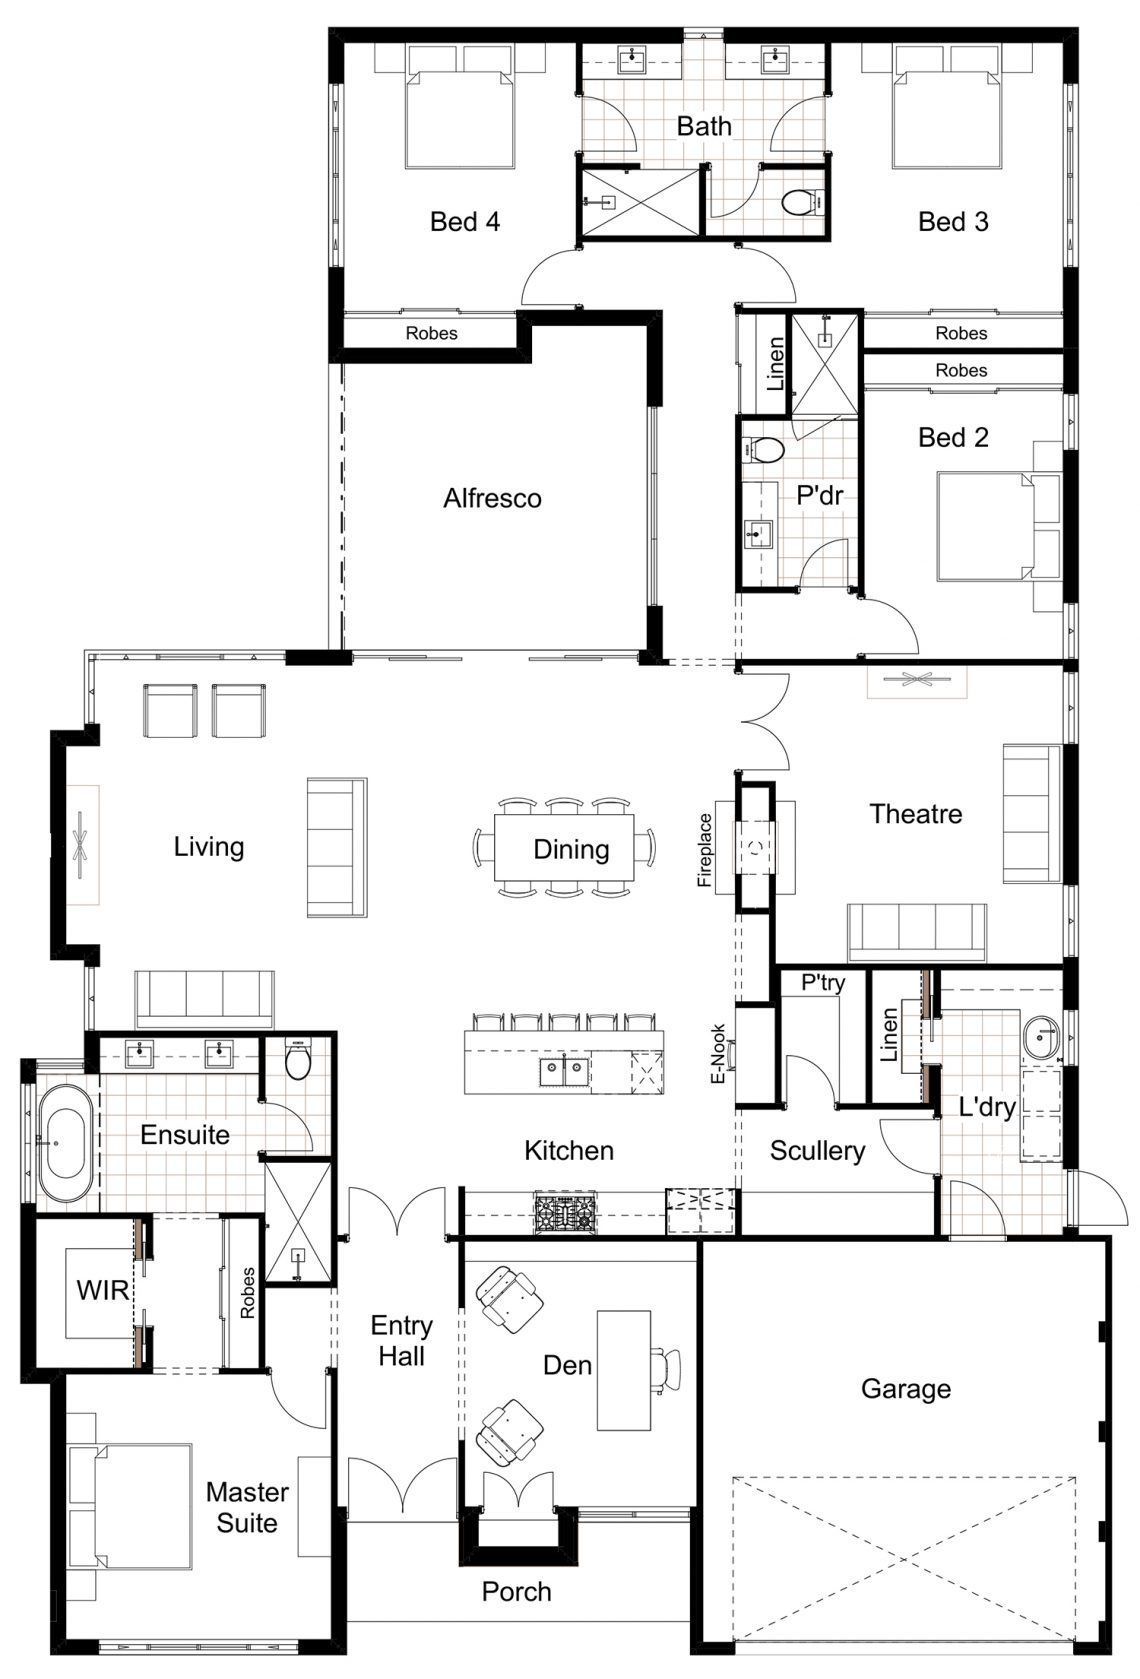 Floor Plan Friday 4 Bedroom Scullery Enook Hamptons Style Home Design Floor Plans House Layout Plans New House Plans